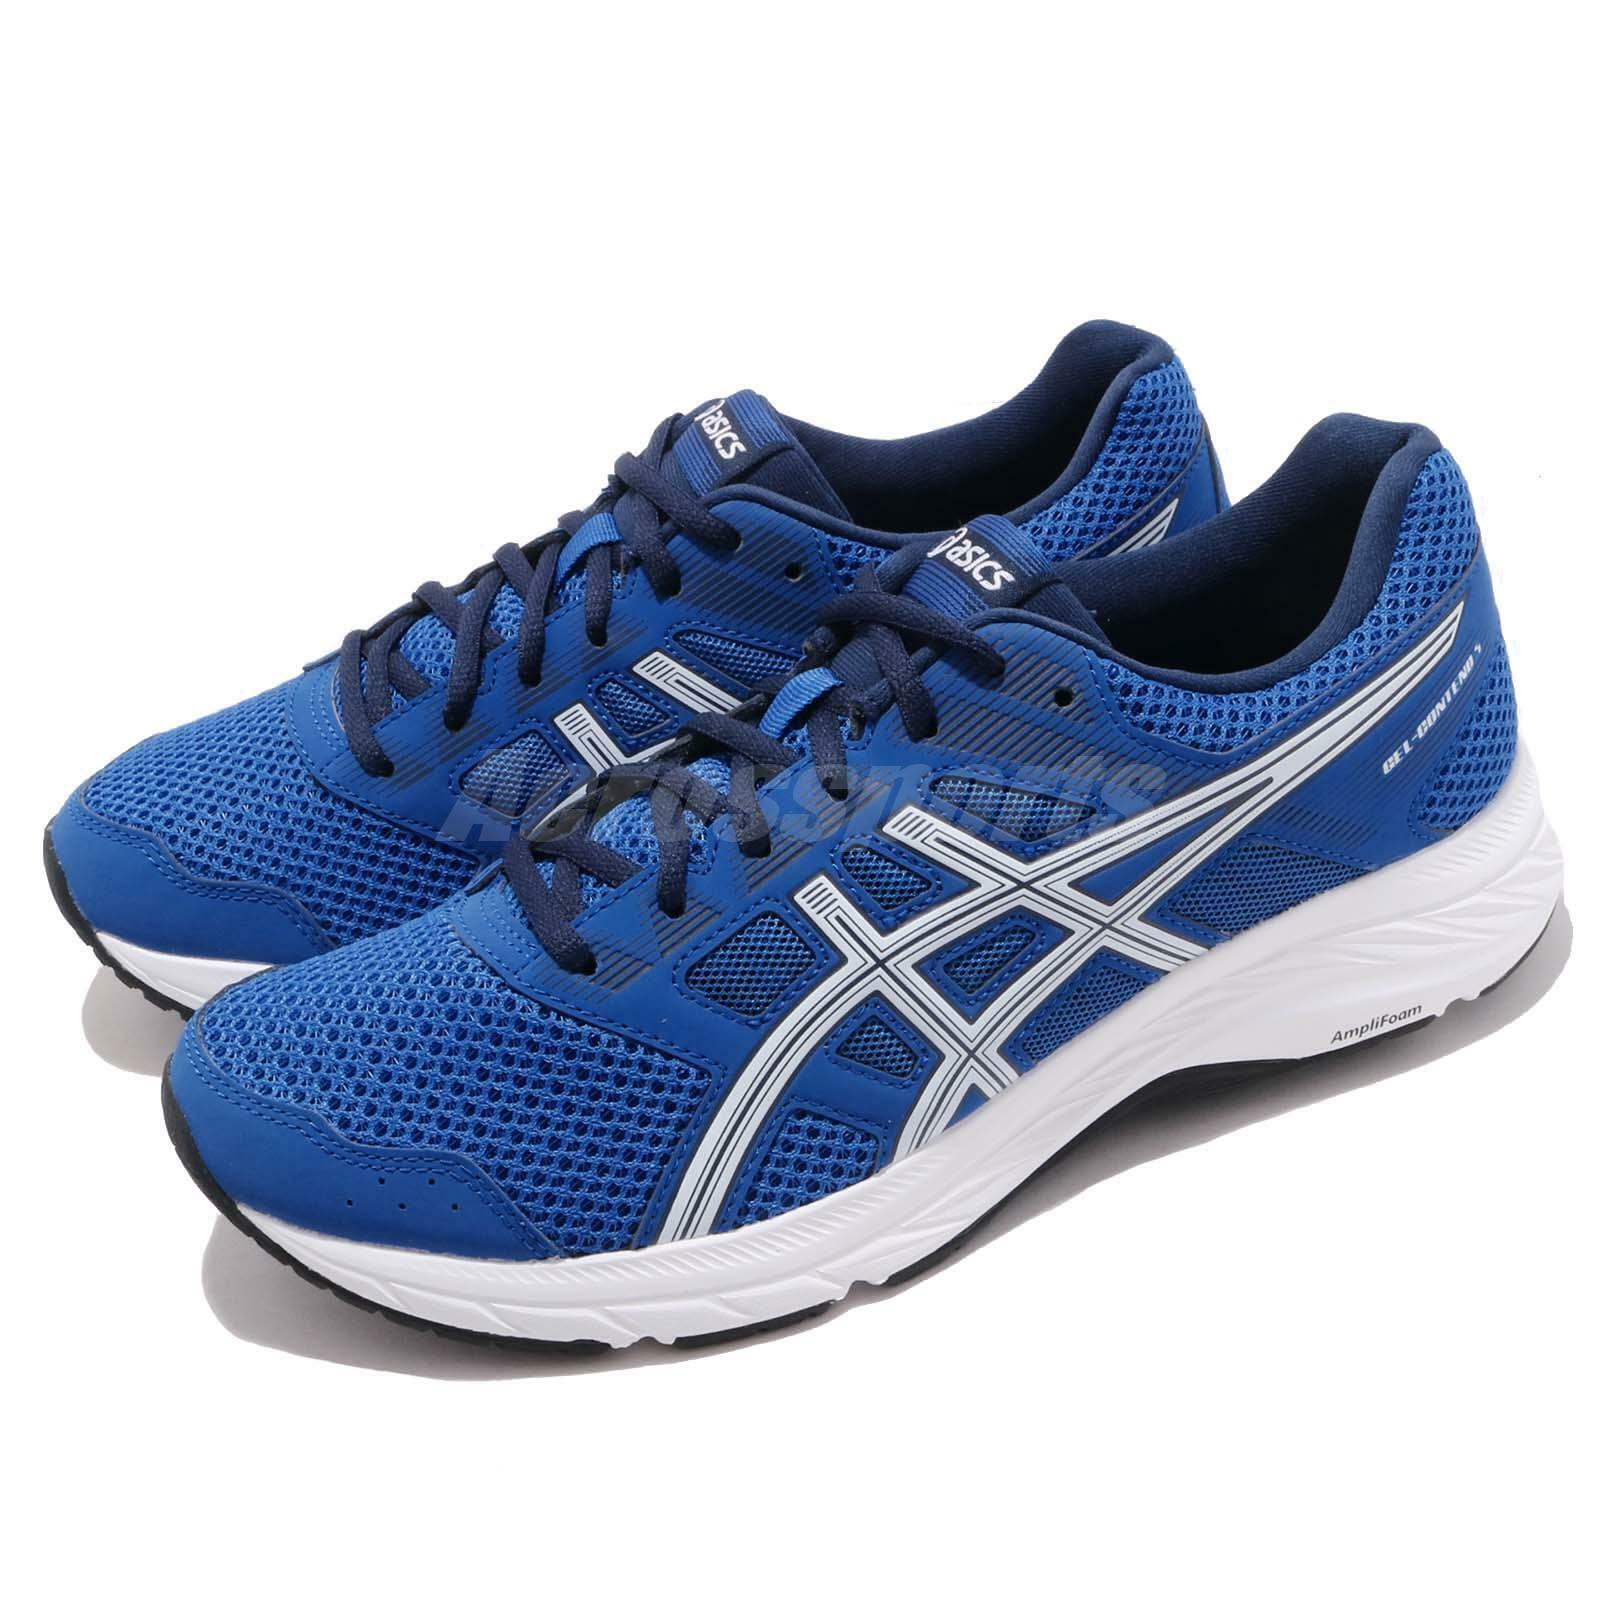 Asics Gel Contend 5 Imperial bluee White Men Running shoes Sneakers 1011A256-400